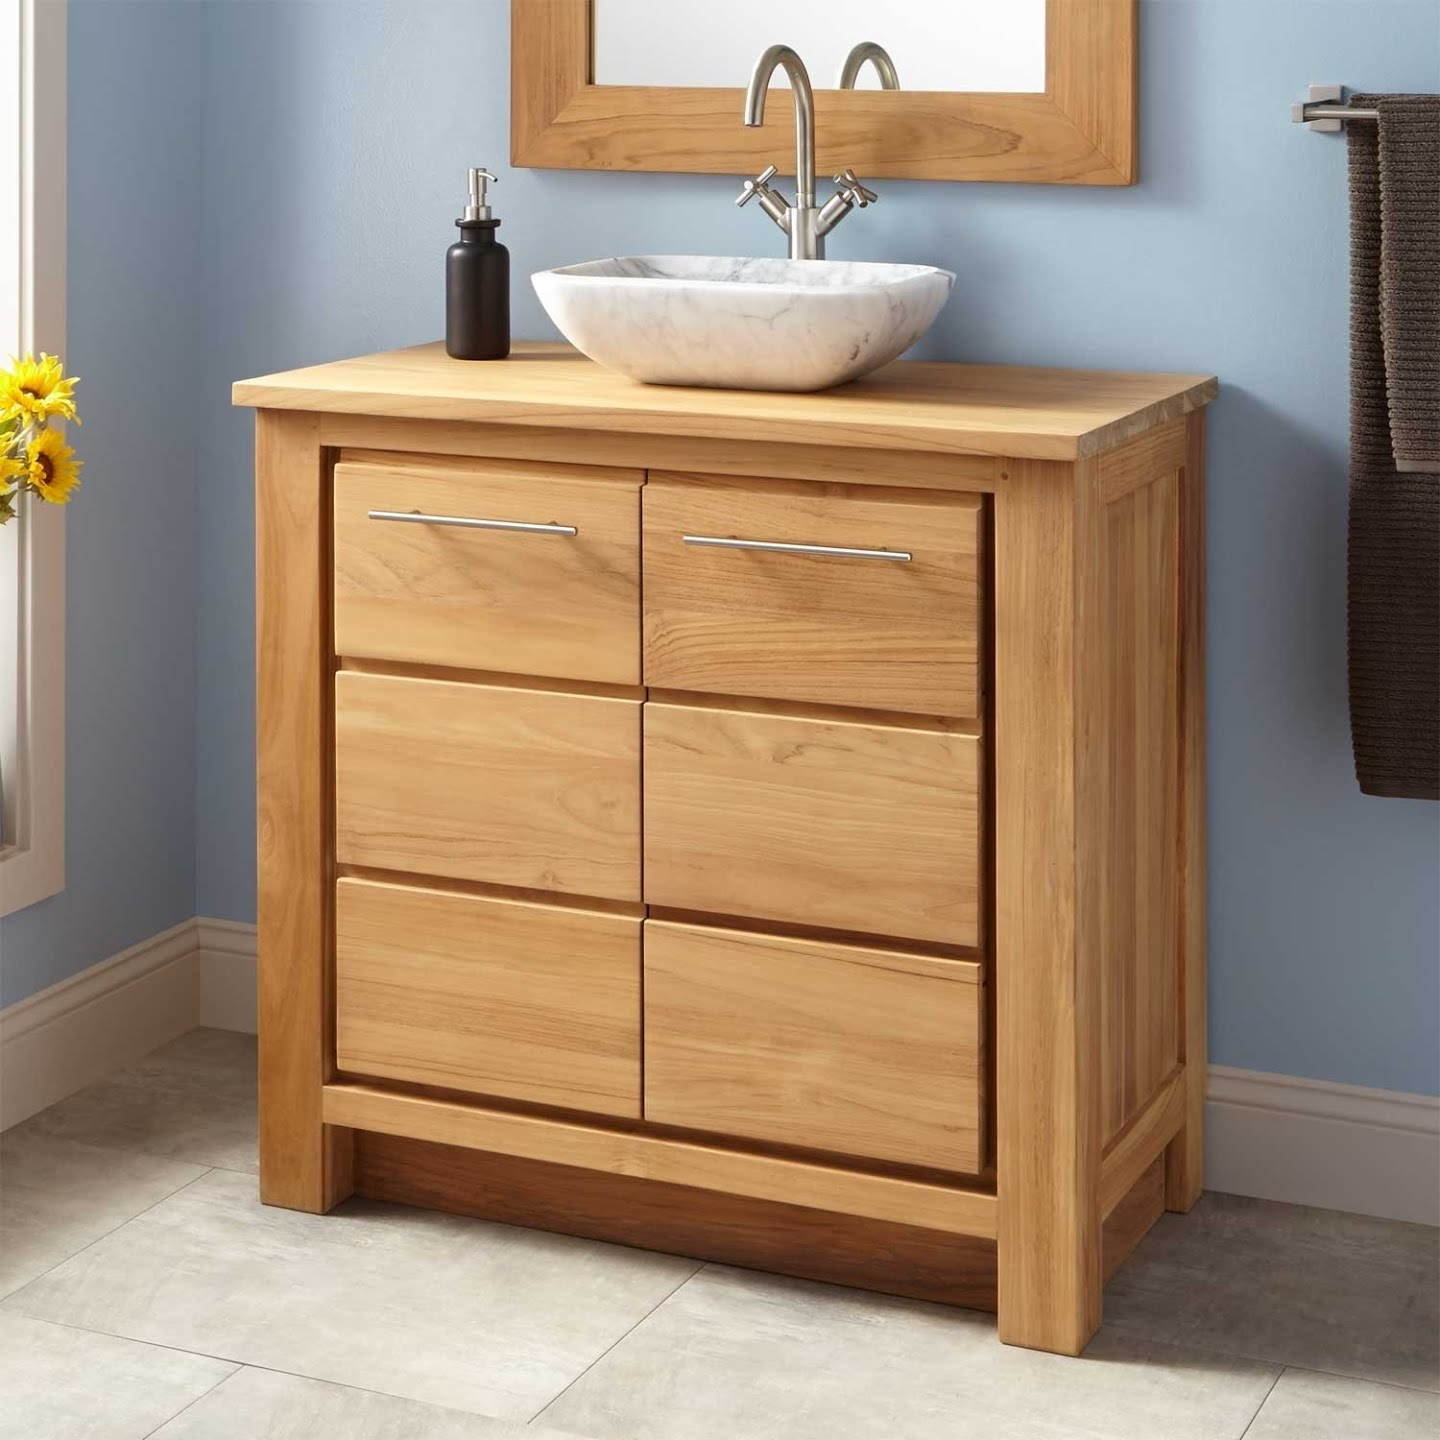 Narrow Depth Bathroom Vanity You Ll Love In 2021 Visualhunt